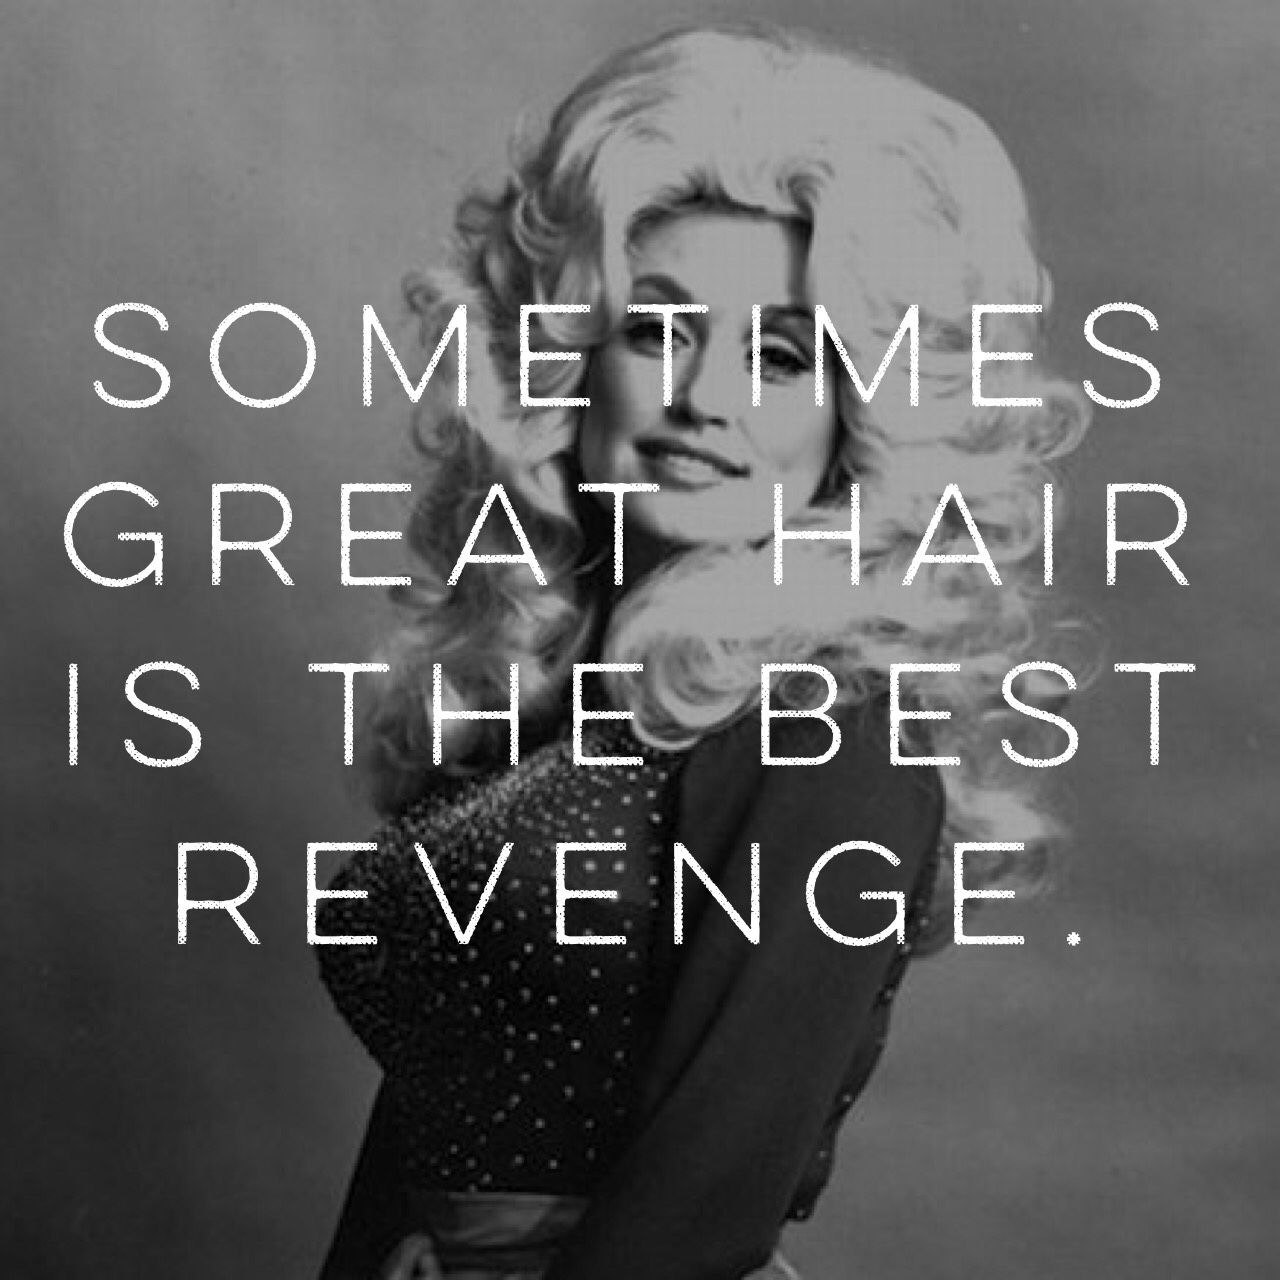 Hottest quot older quot celebrity page 5 - Sometimes Great Hair Is The Best Revenge